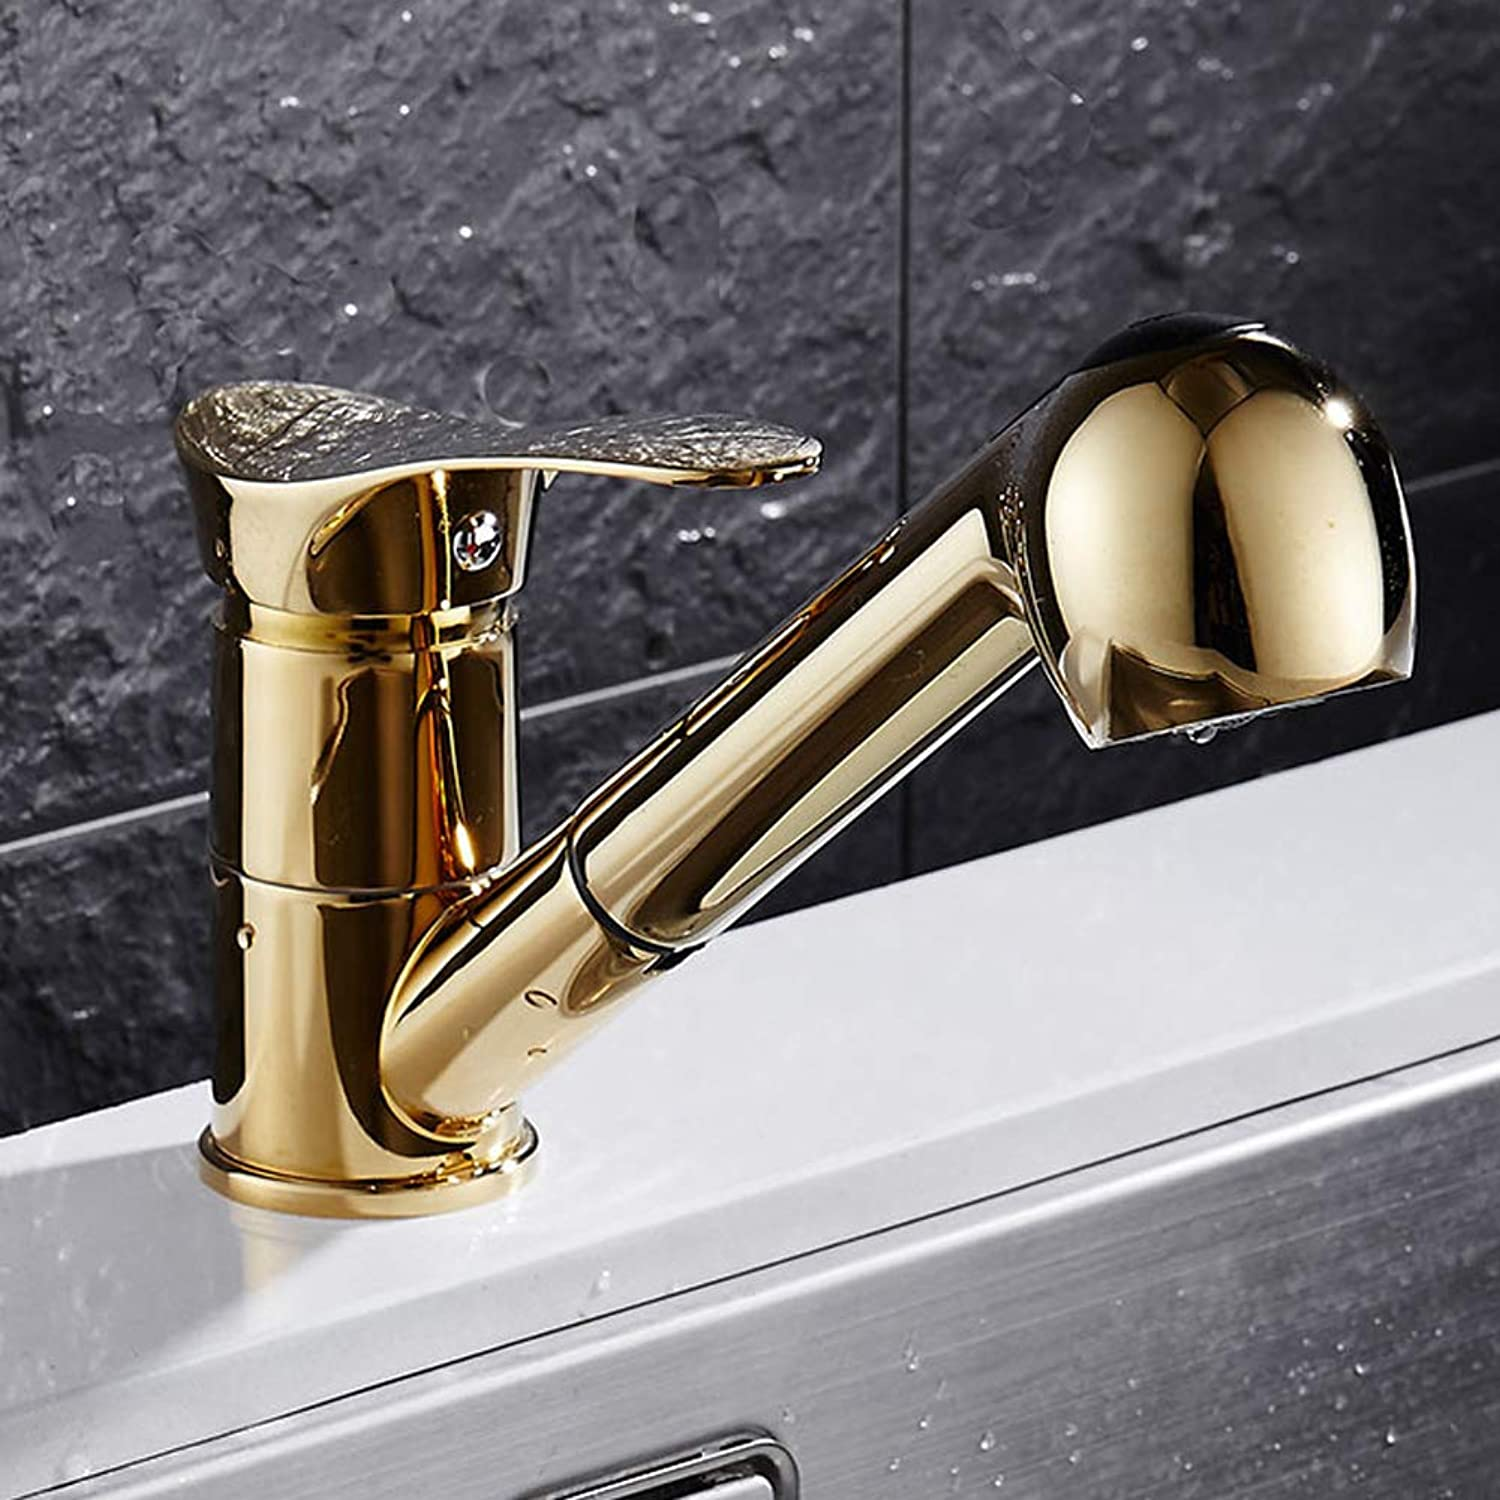 360°Swivel Kitchen Tap European Style with Pull Out Swivel Spout all Brass Sink Hot Cold Taps Two ways of water flow,goldFaucet